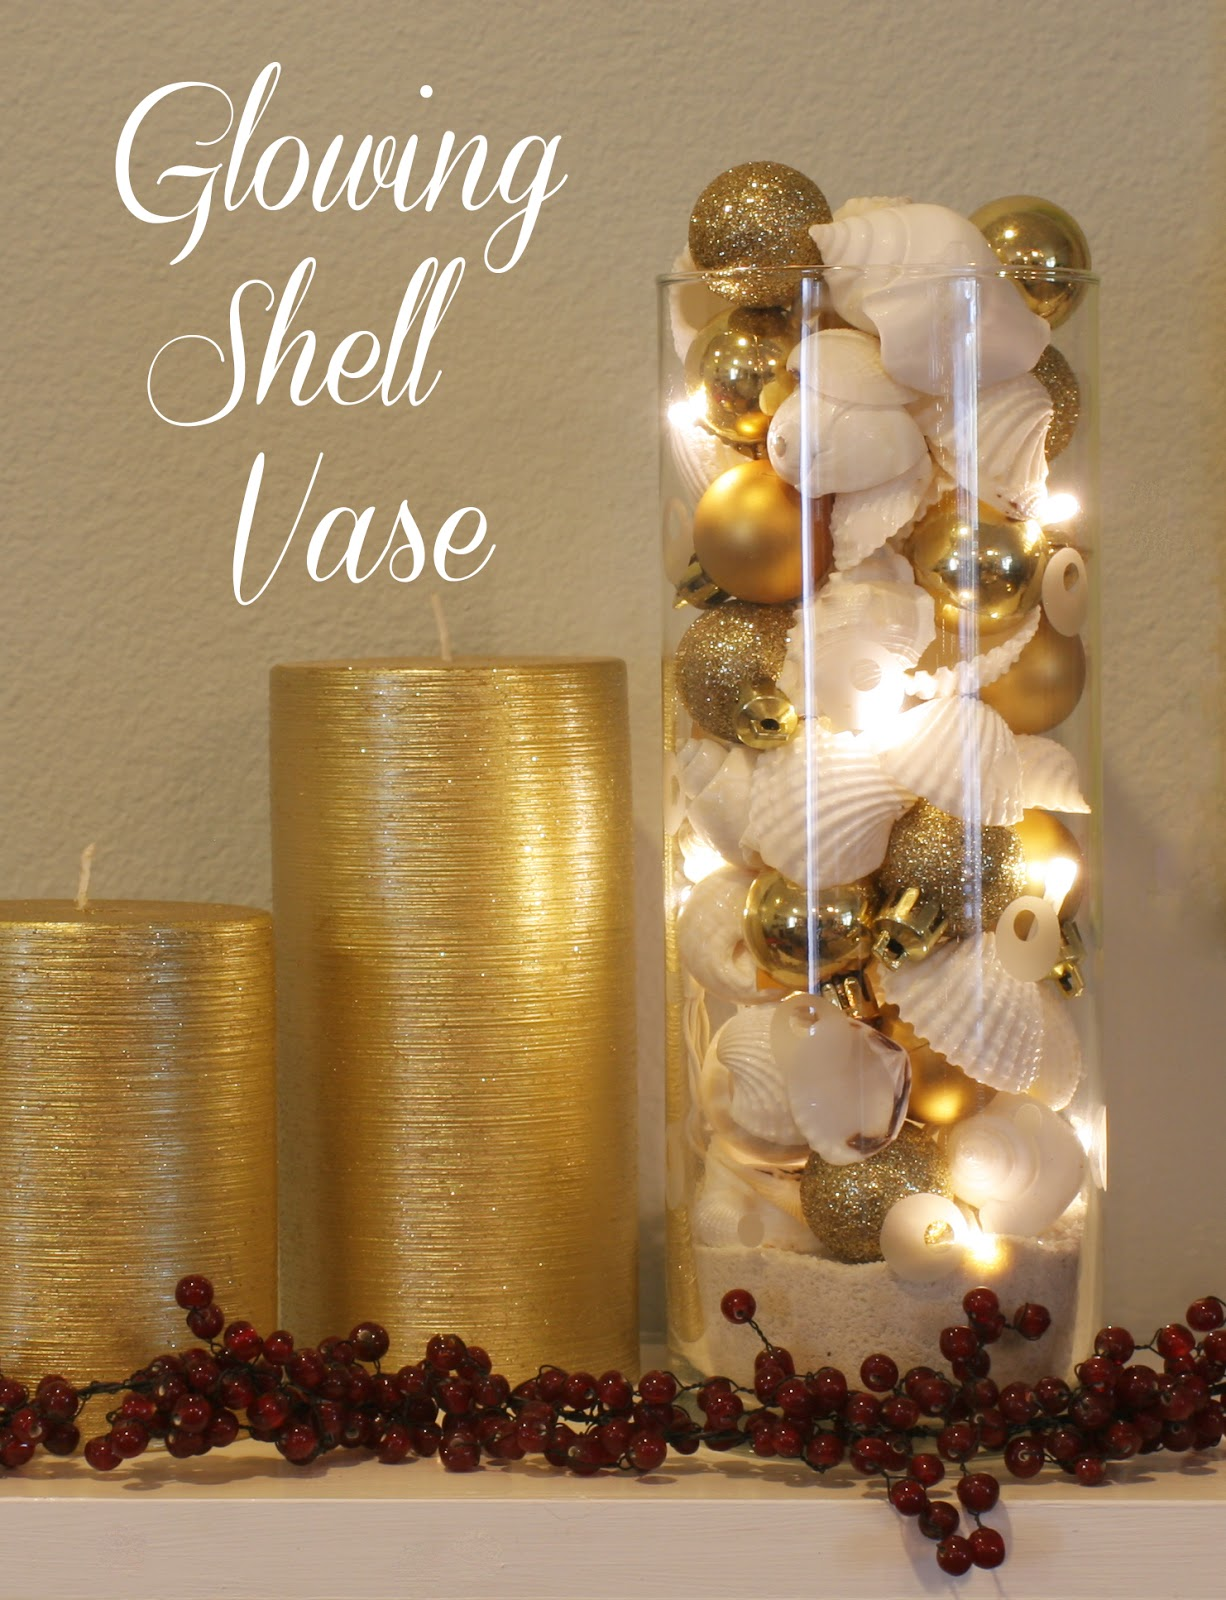 Glowing Shell Vase